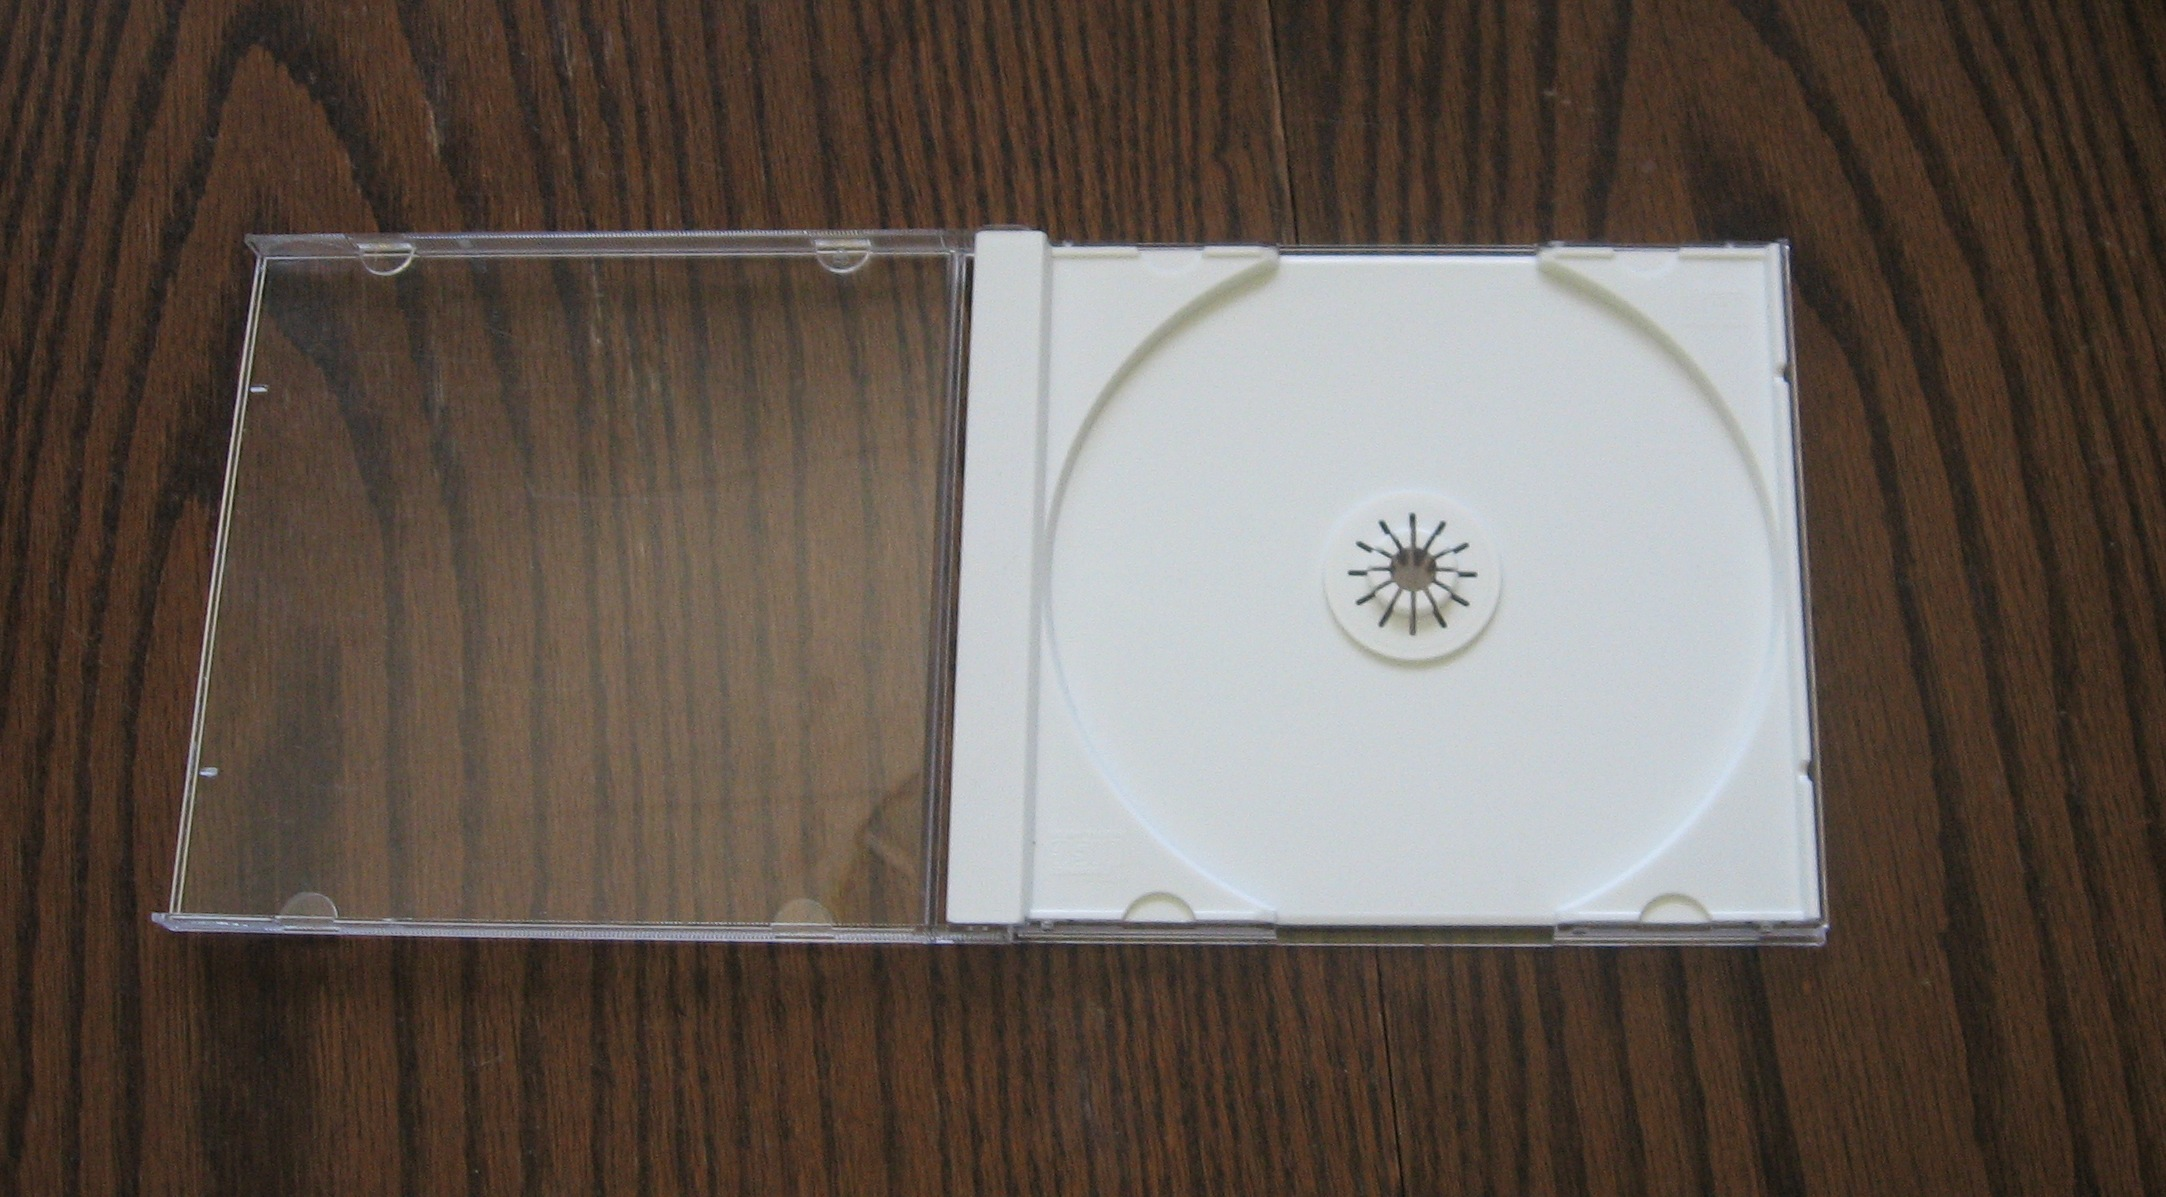 What Are Cd Jewel Cases